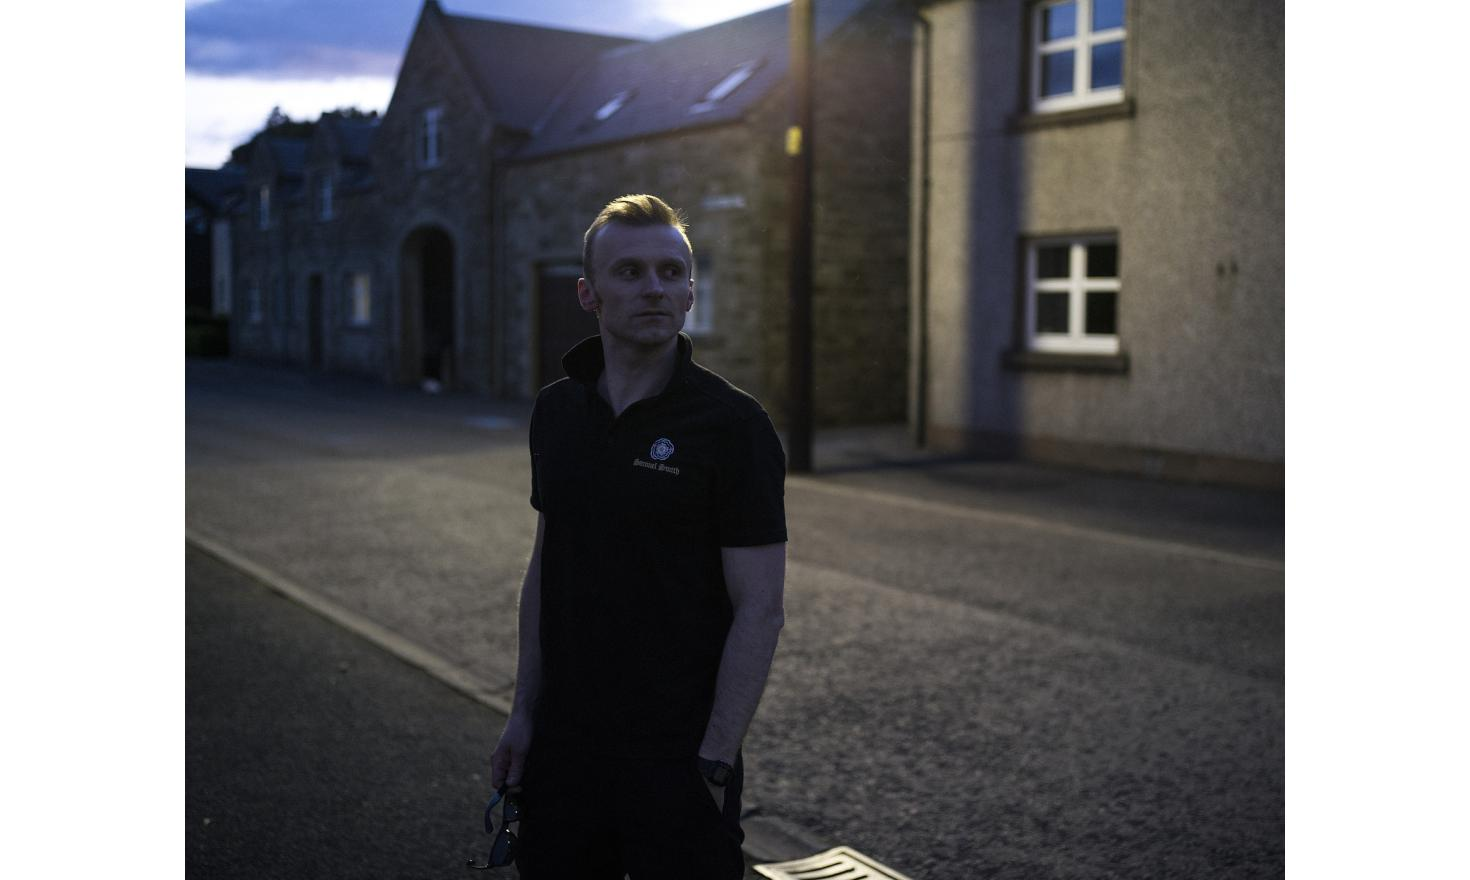 Tomasz Milkowski is the manager of one of the three pubs in Newcastleton, Scotland. He is a Polish immigrant who has been living in the UK for 14 years, and who has obtained British citizenship.